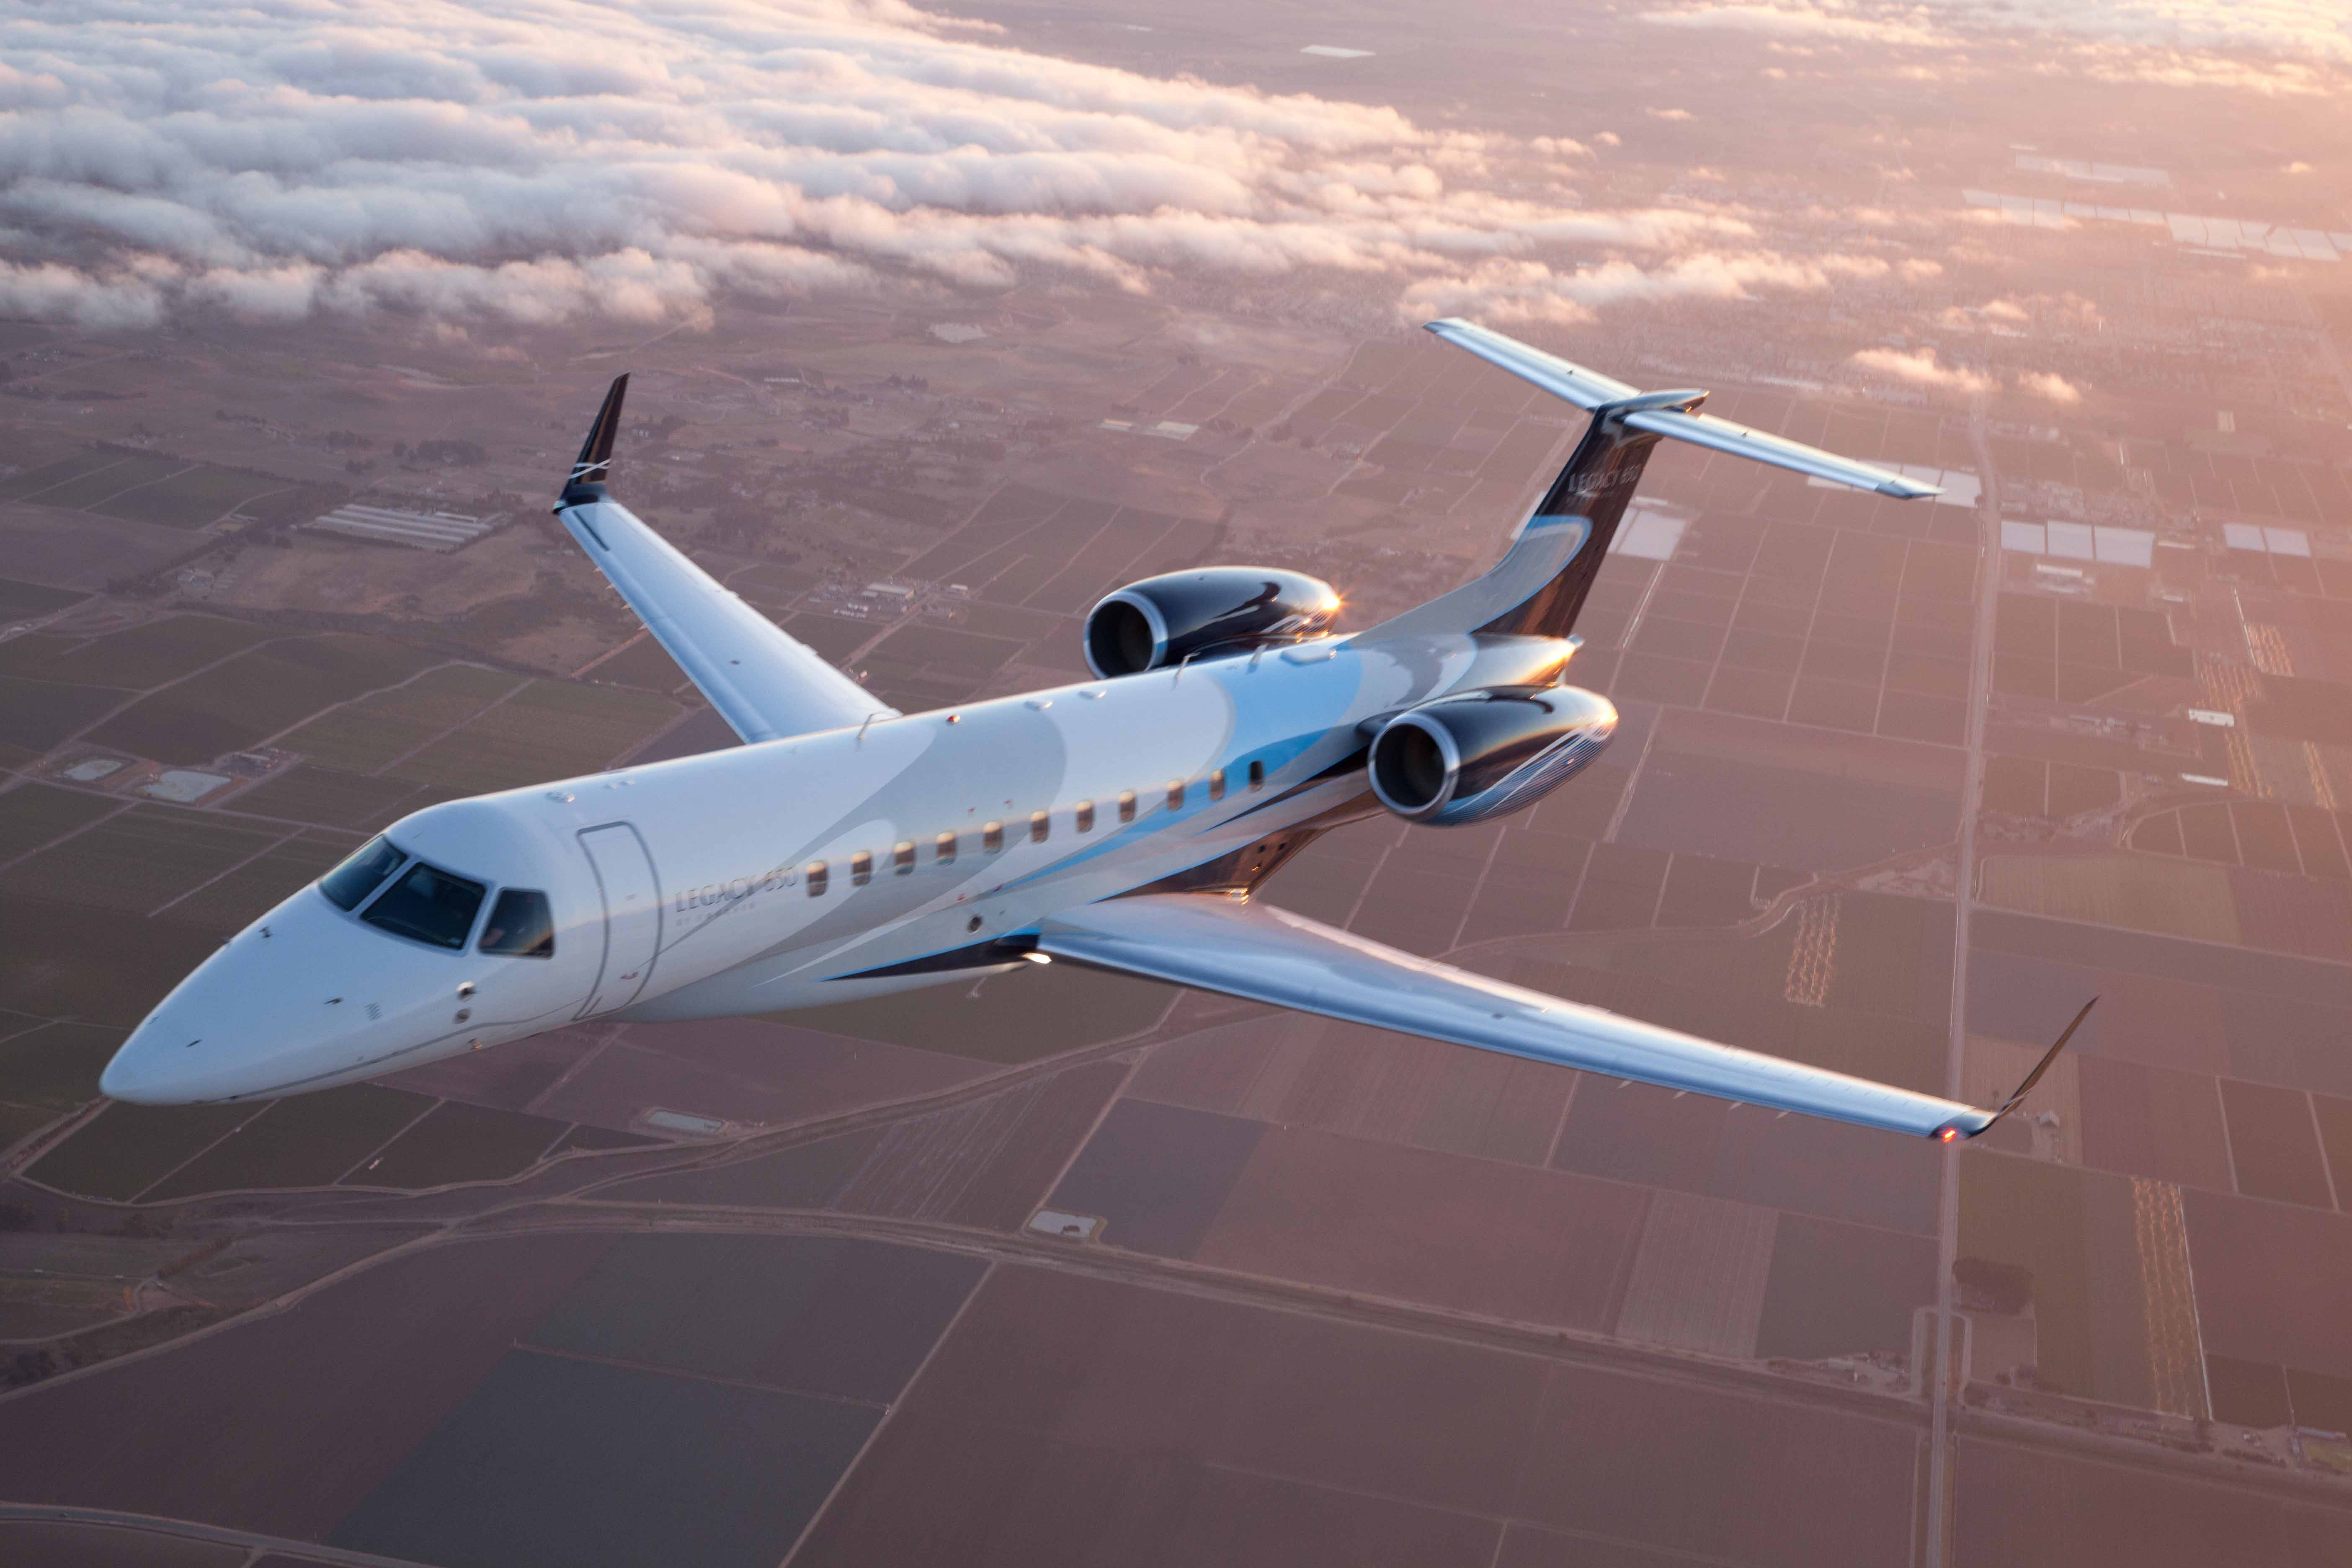 YOM 12/2014 EMBRAER LEGACY 650 FOR SALE. 5 YEAR FACTORY WARRANTY.